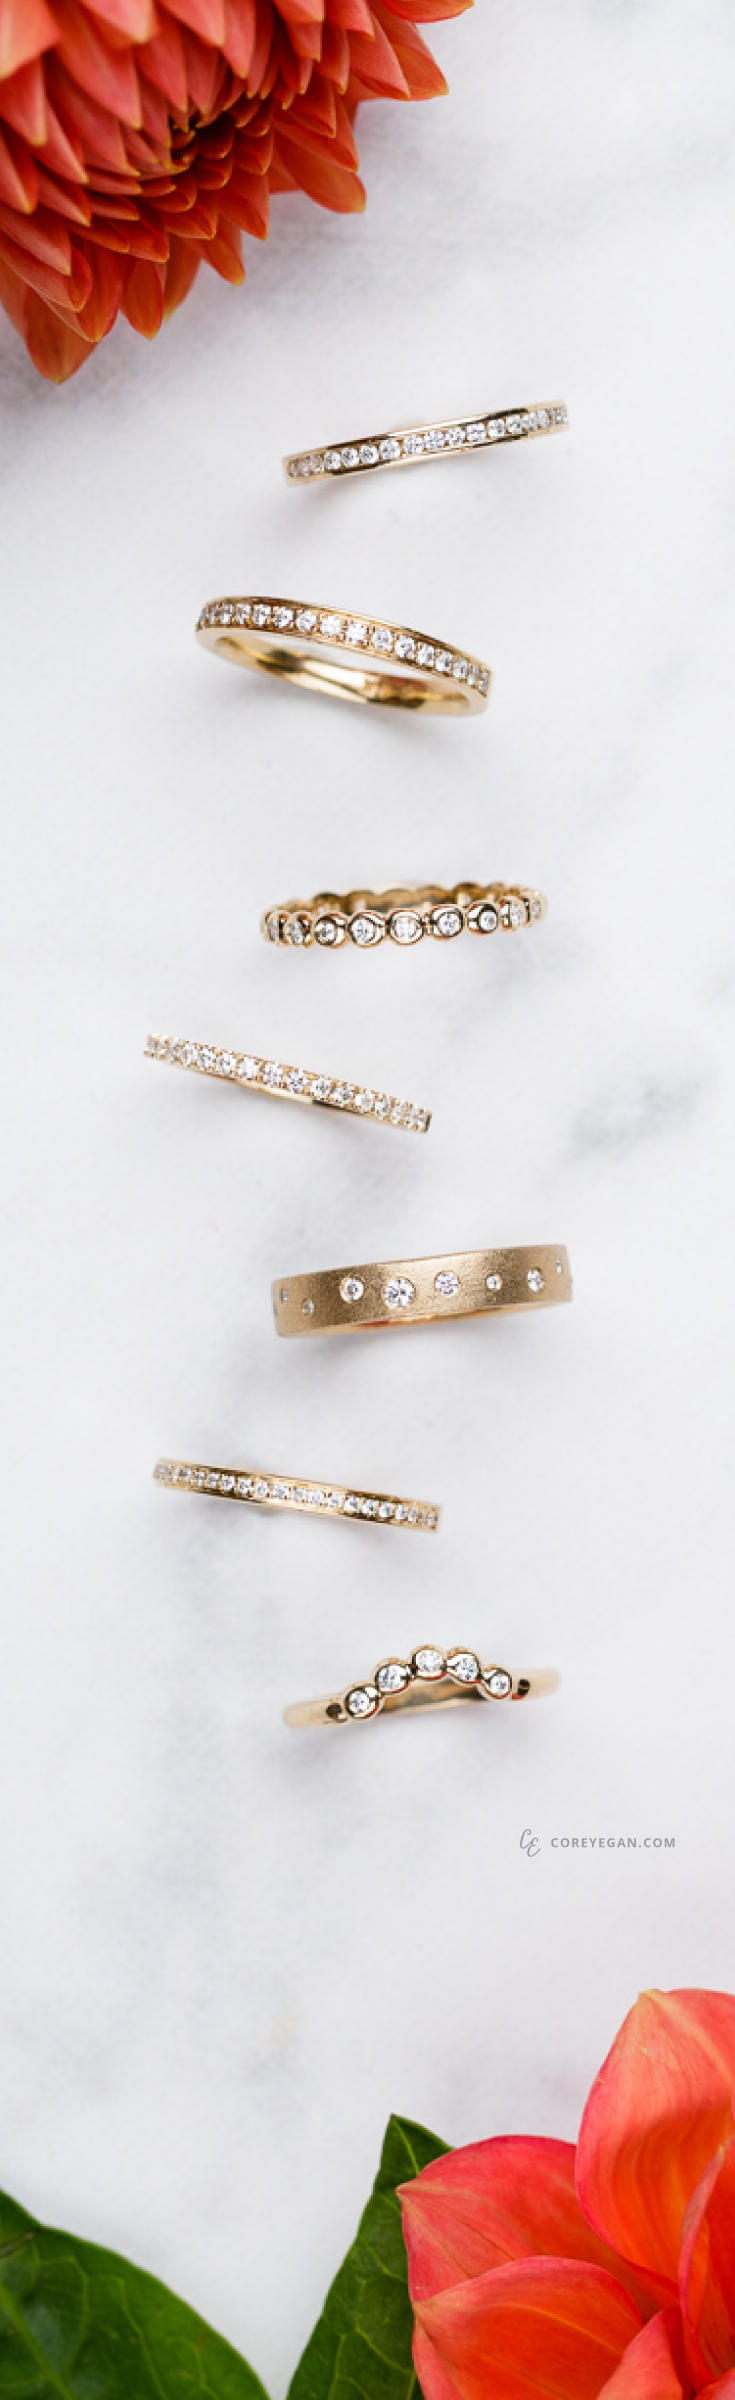 Yellow Gold Diamond Wedding Bands by Corey Egan